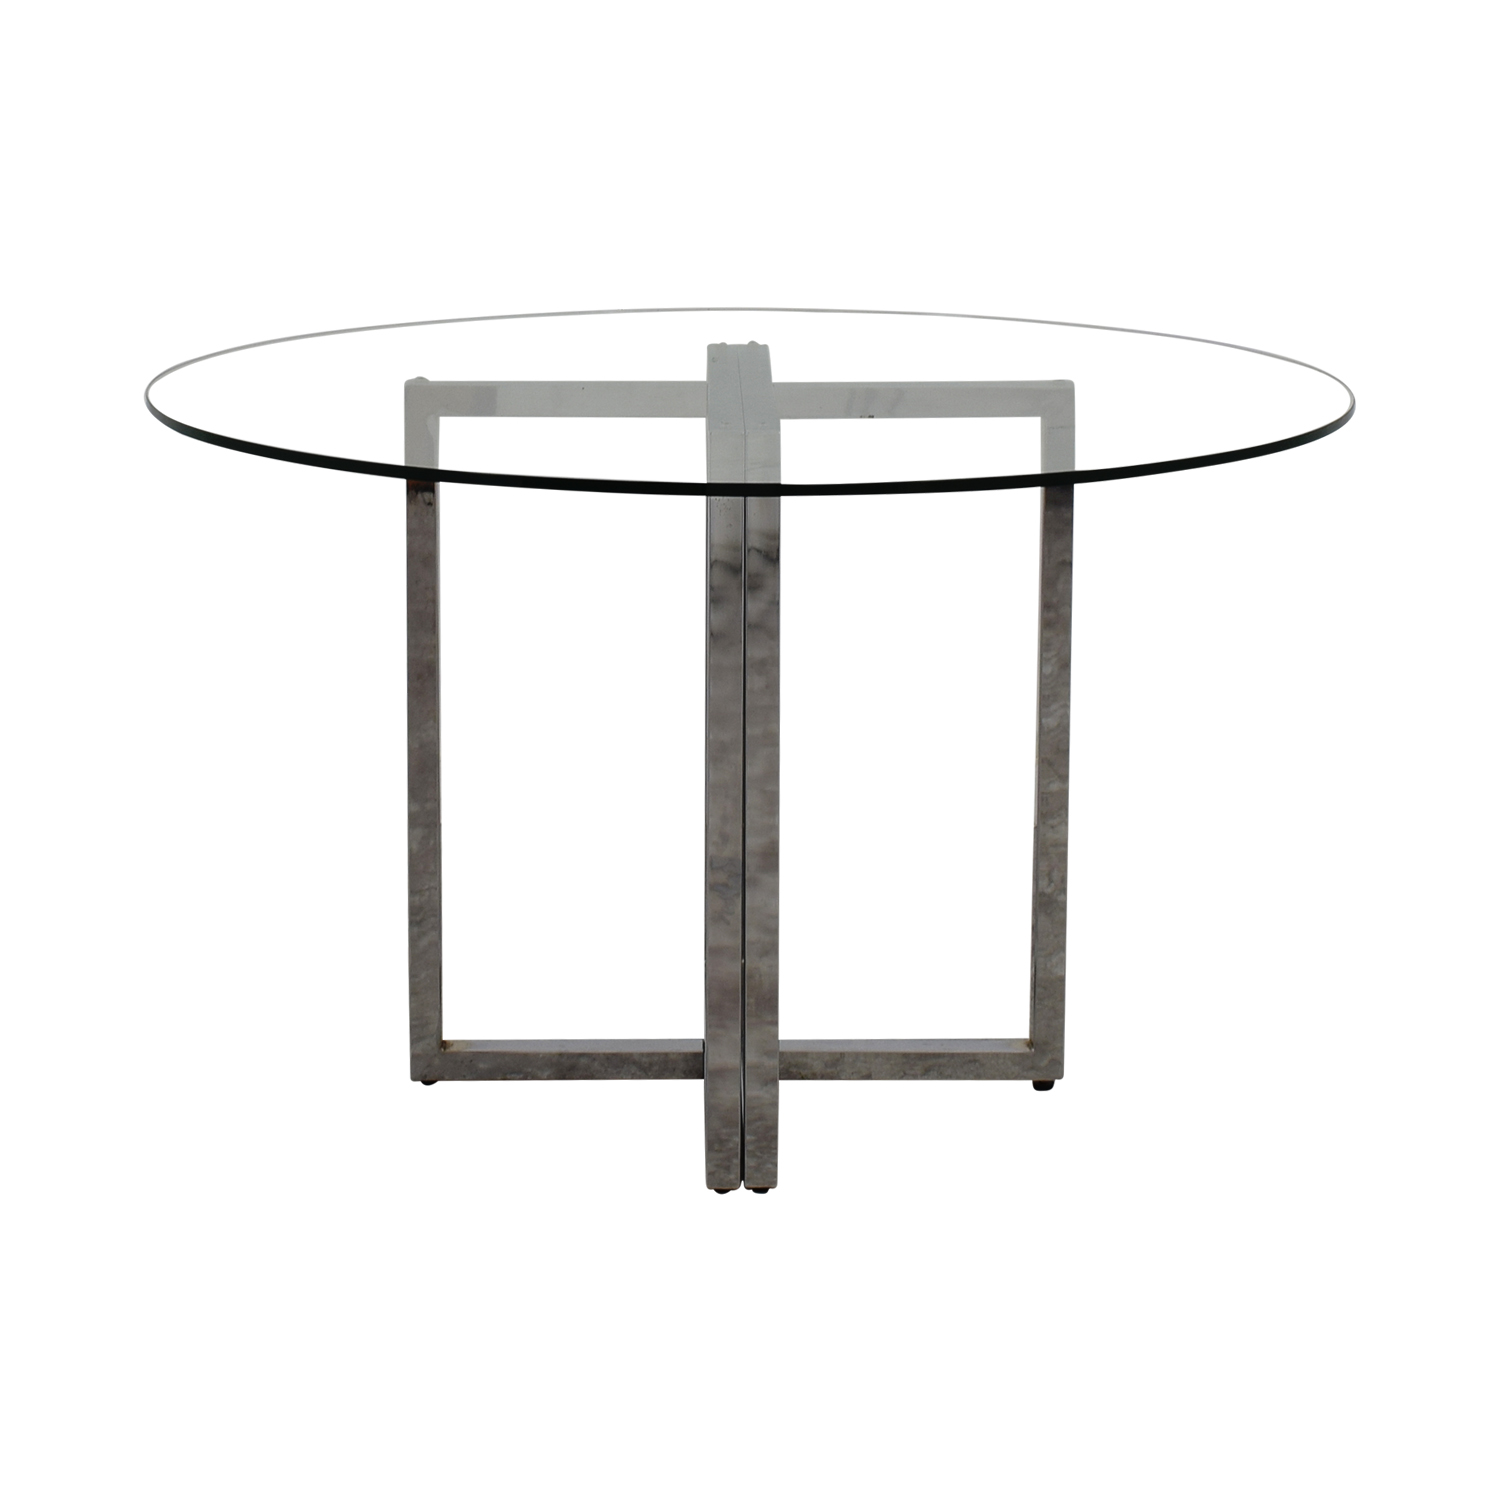 Cb Dining Table Coupon - Cb2 tulip table